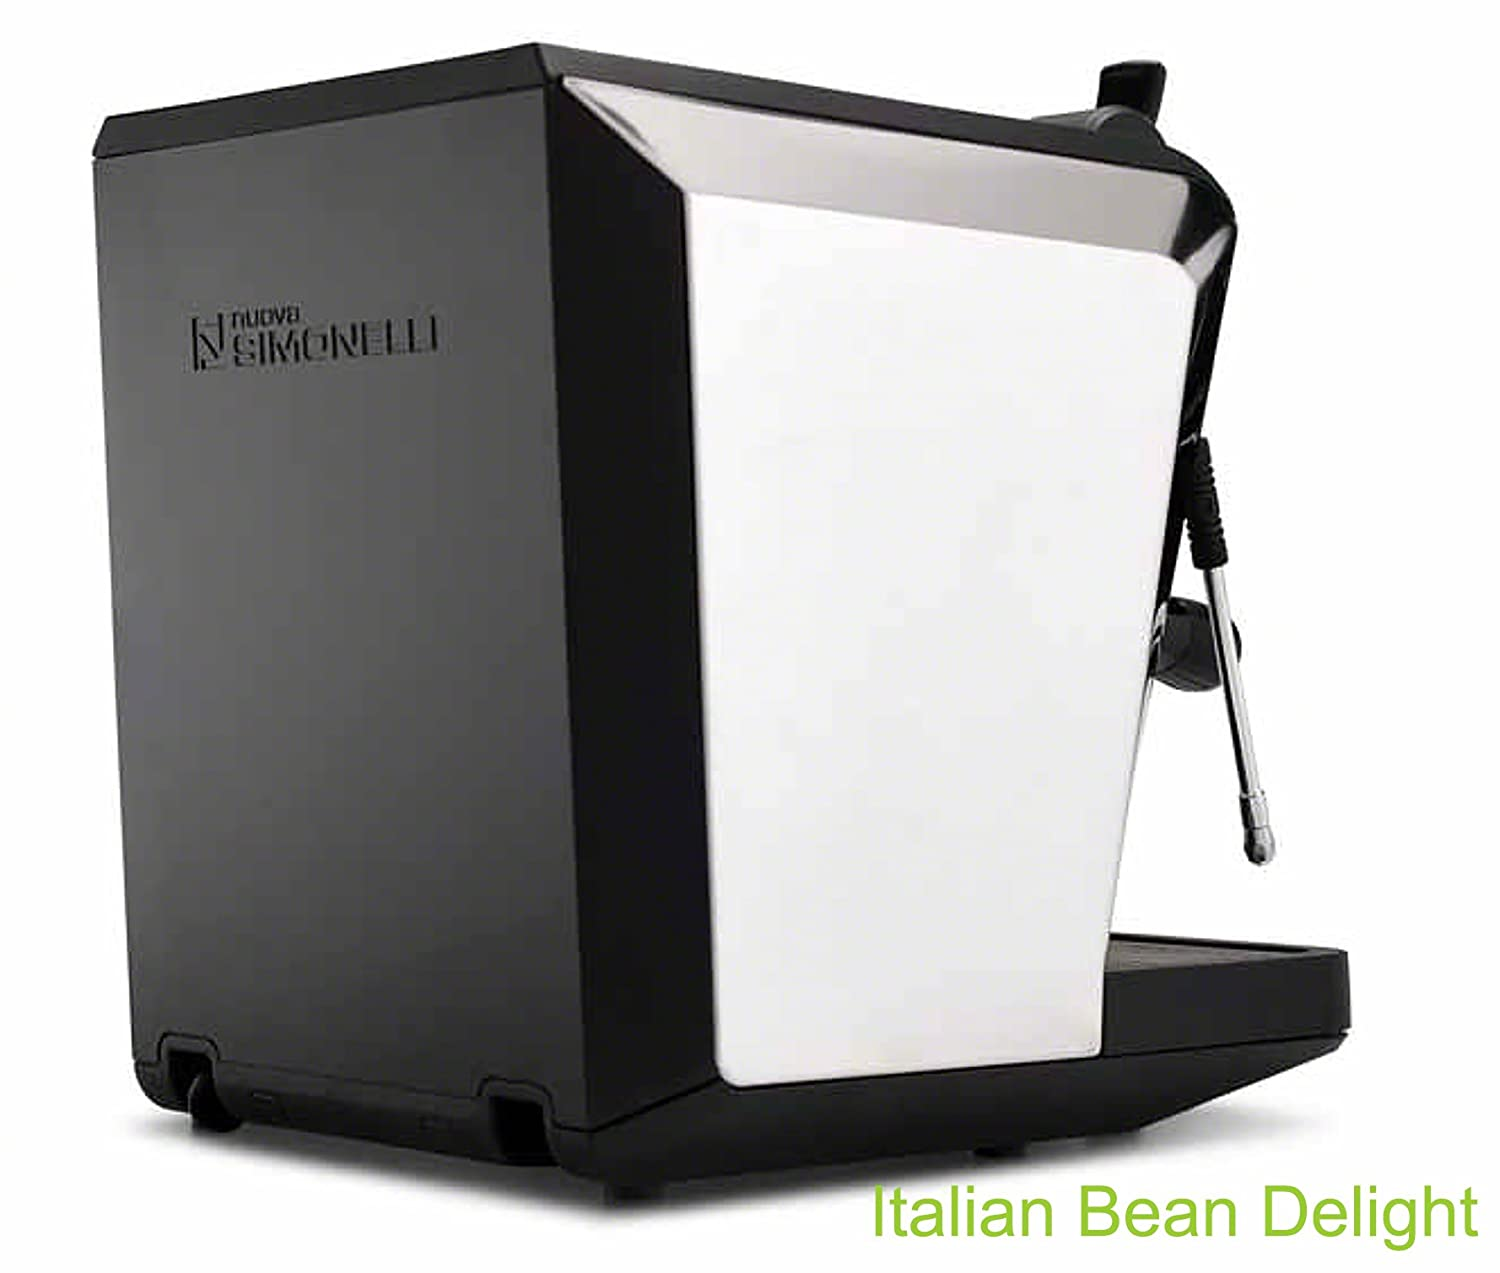 Amazon.com: Nuova simonelli Oscar Direct Connect versión ...